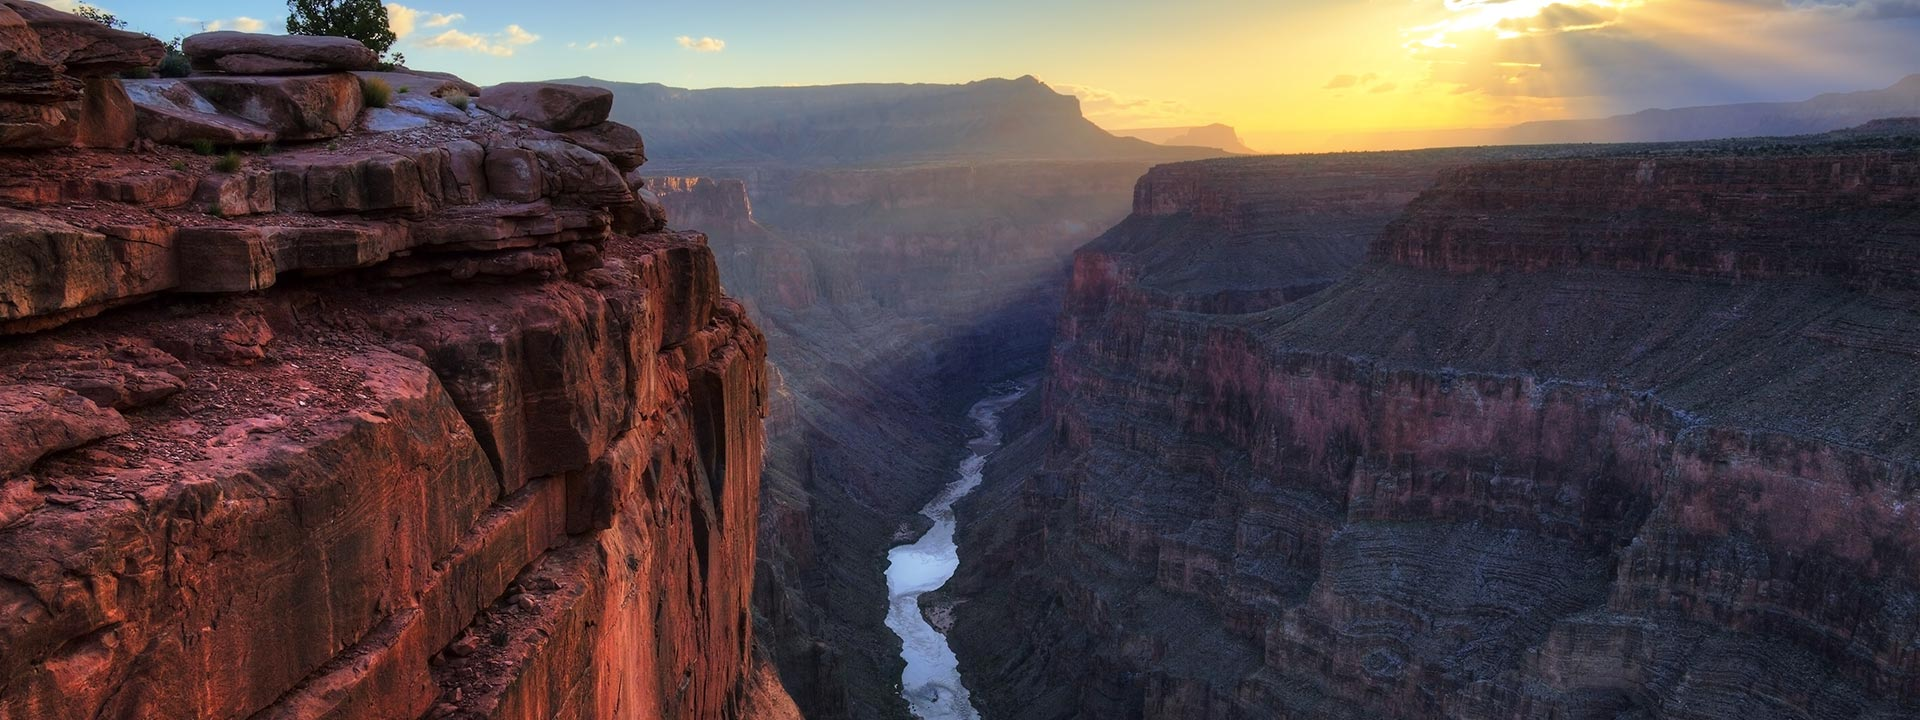 Las Vegas To Grand Canyon Travel Advice From American